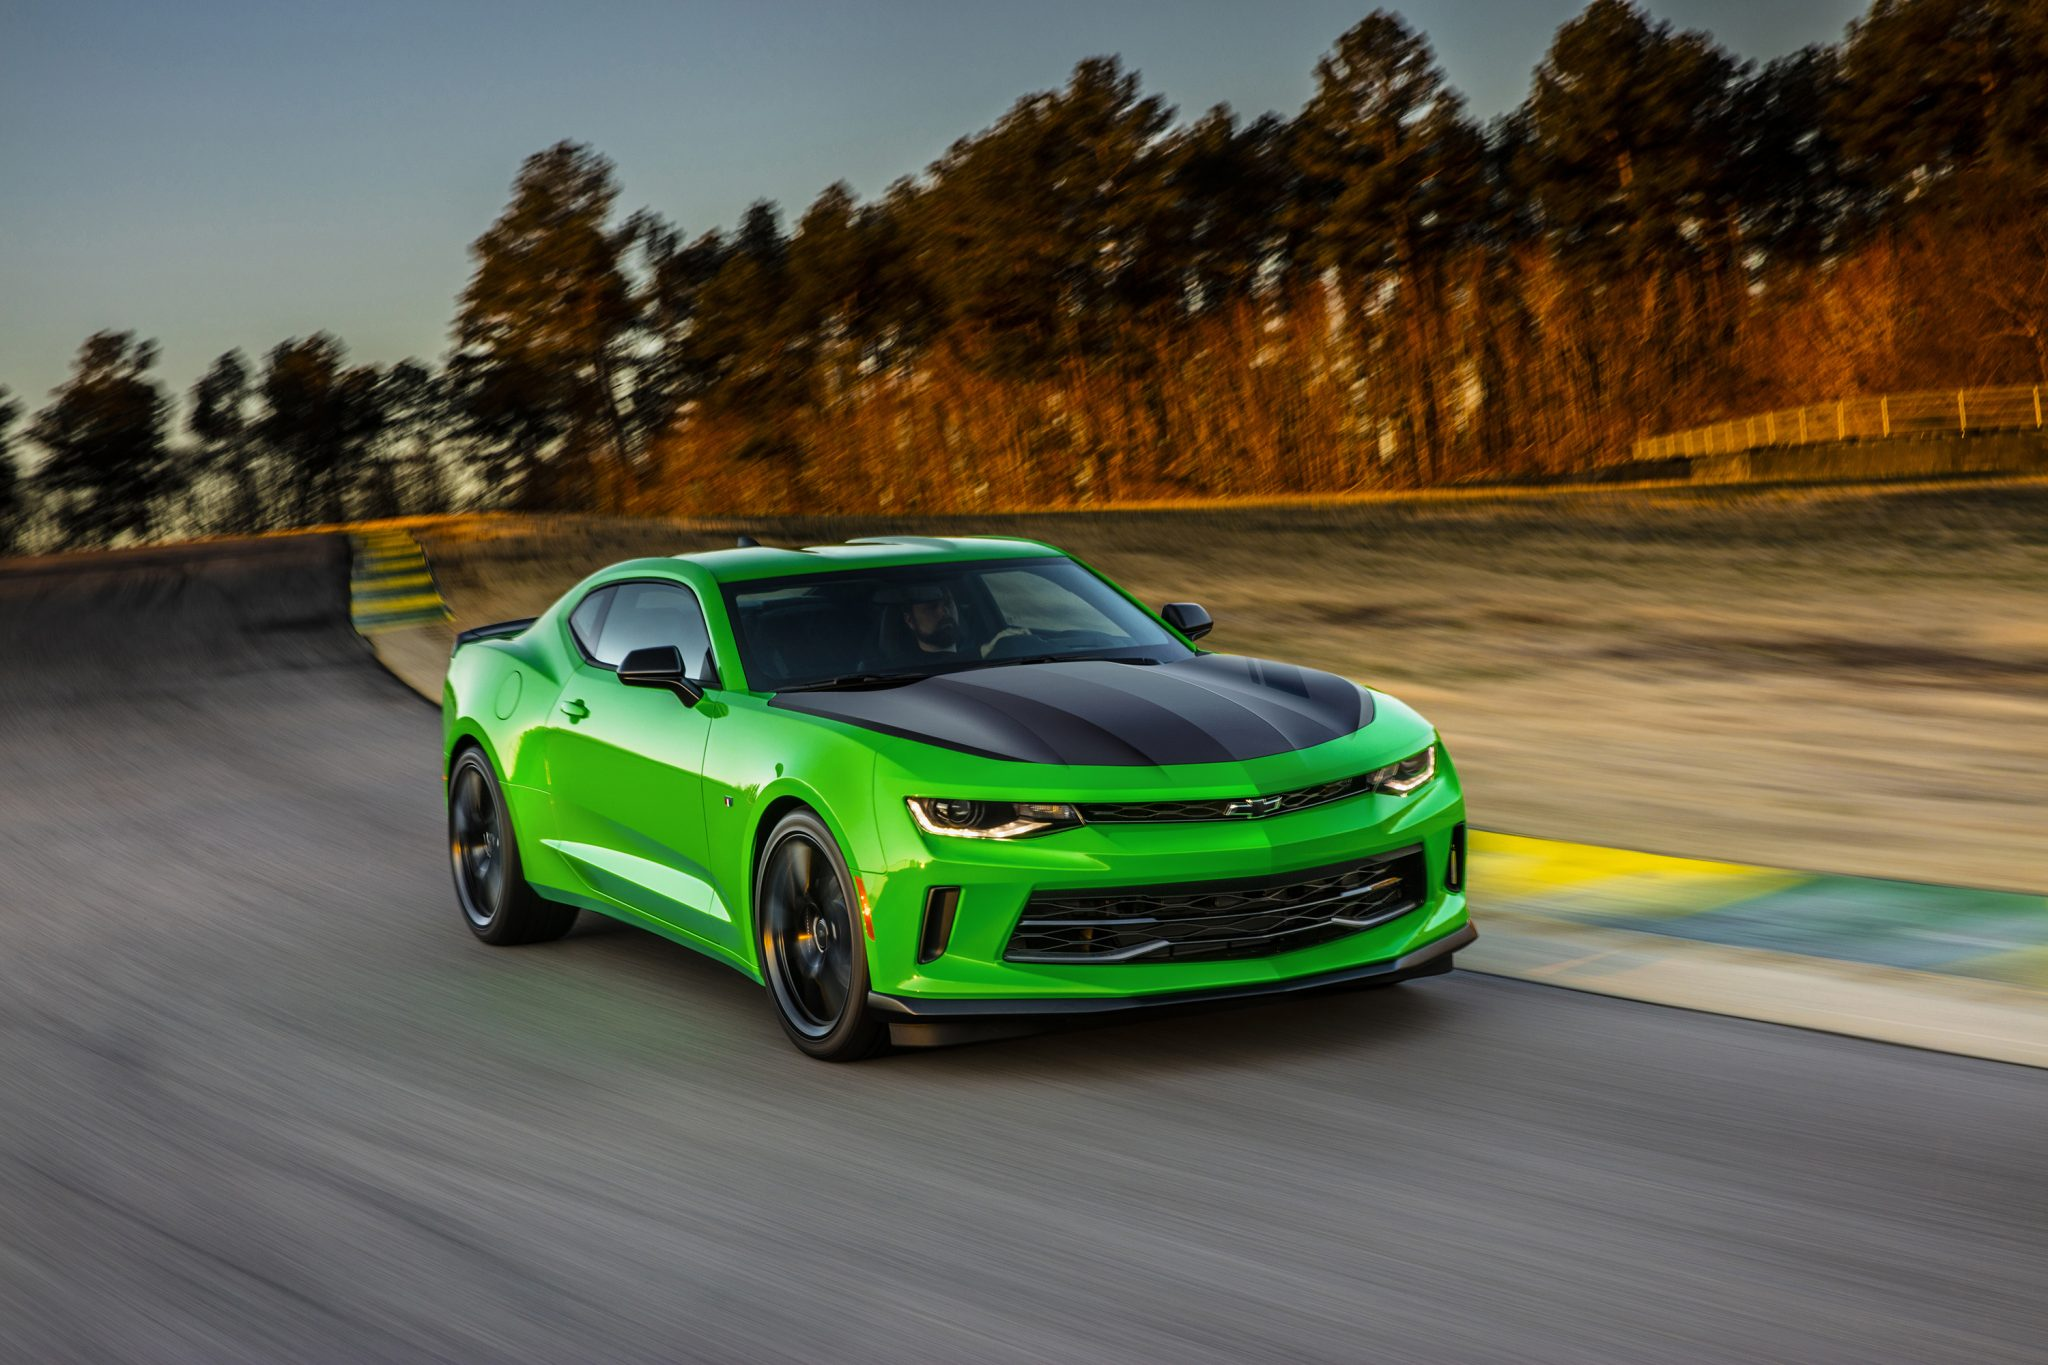 us ss news media benchmark en content may new chevrolet camaro pages establishes detail performance